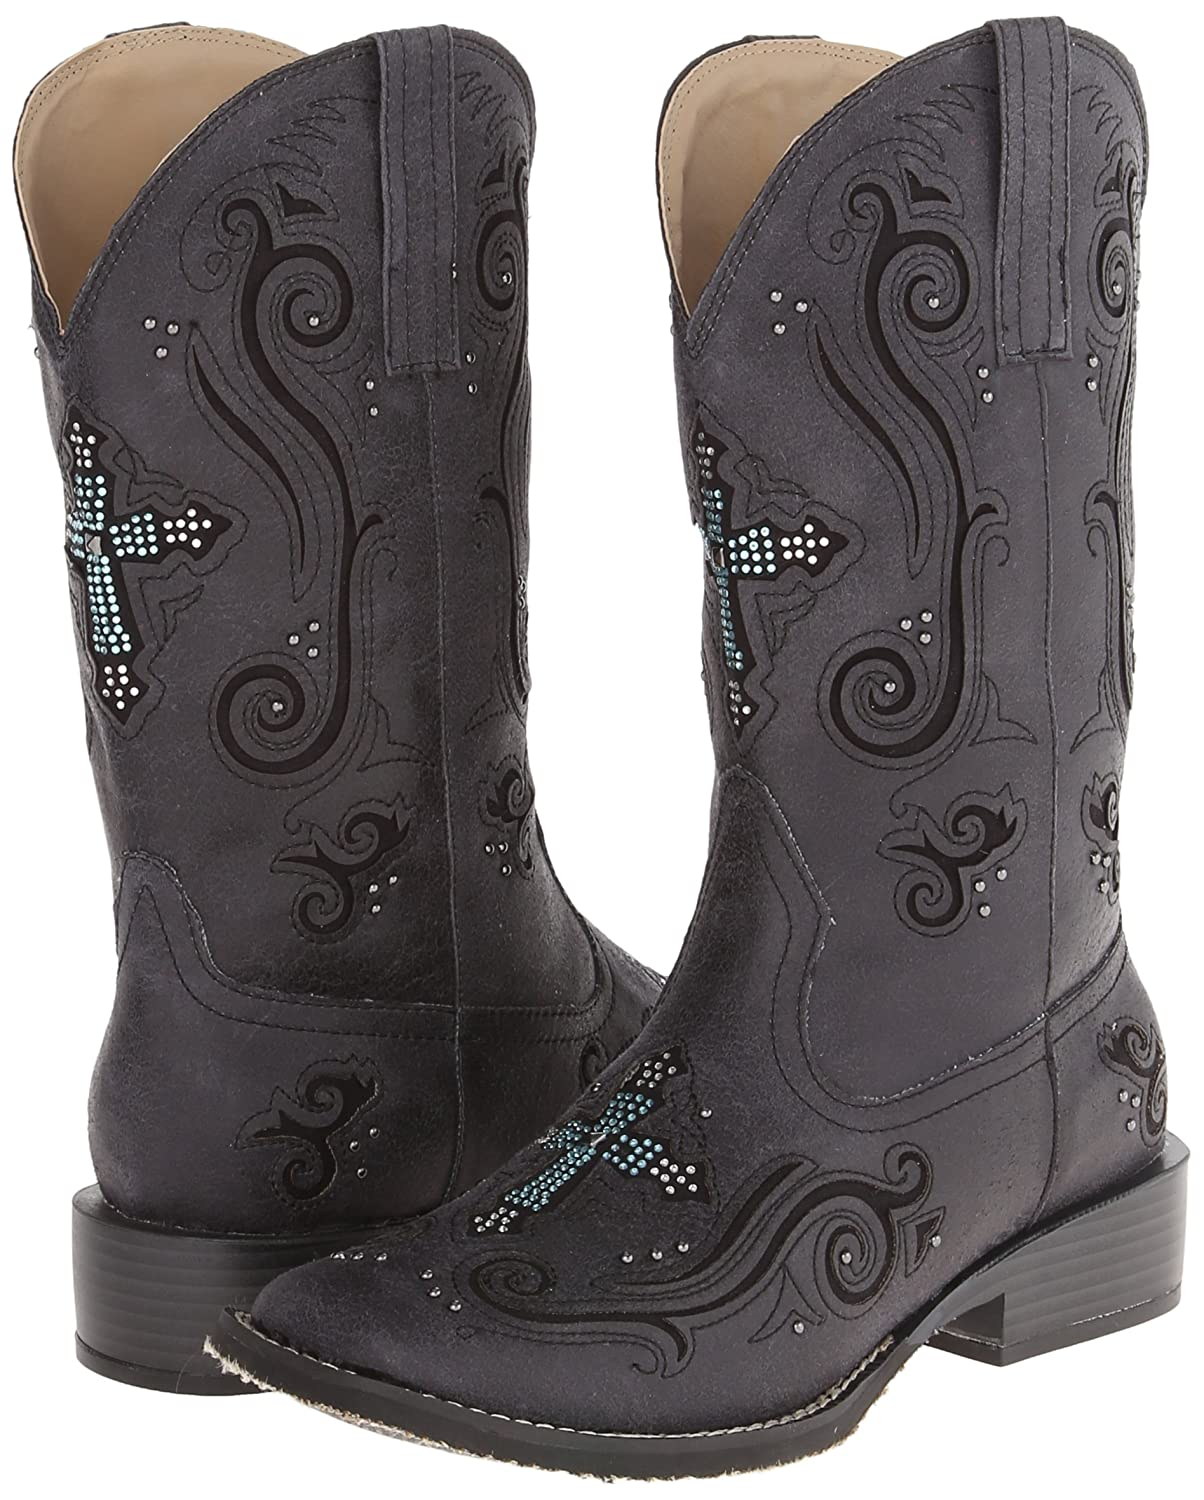 Roper Women's Crossed 10.5 Out Western Boot B00JE8XOZM 10.5 Crossed B(M) US|Black 433bef